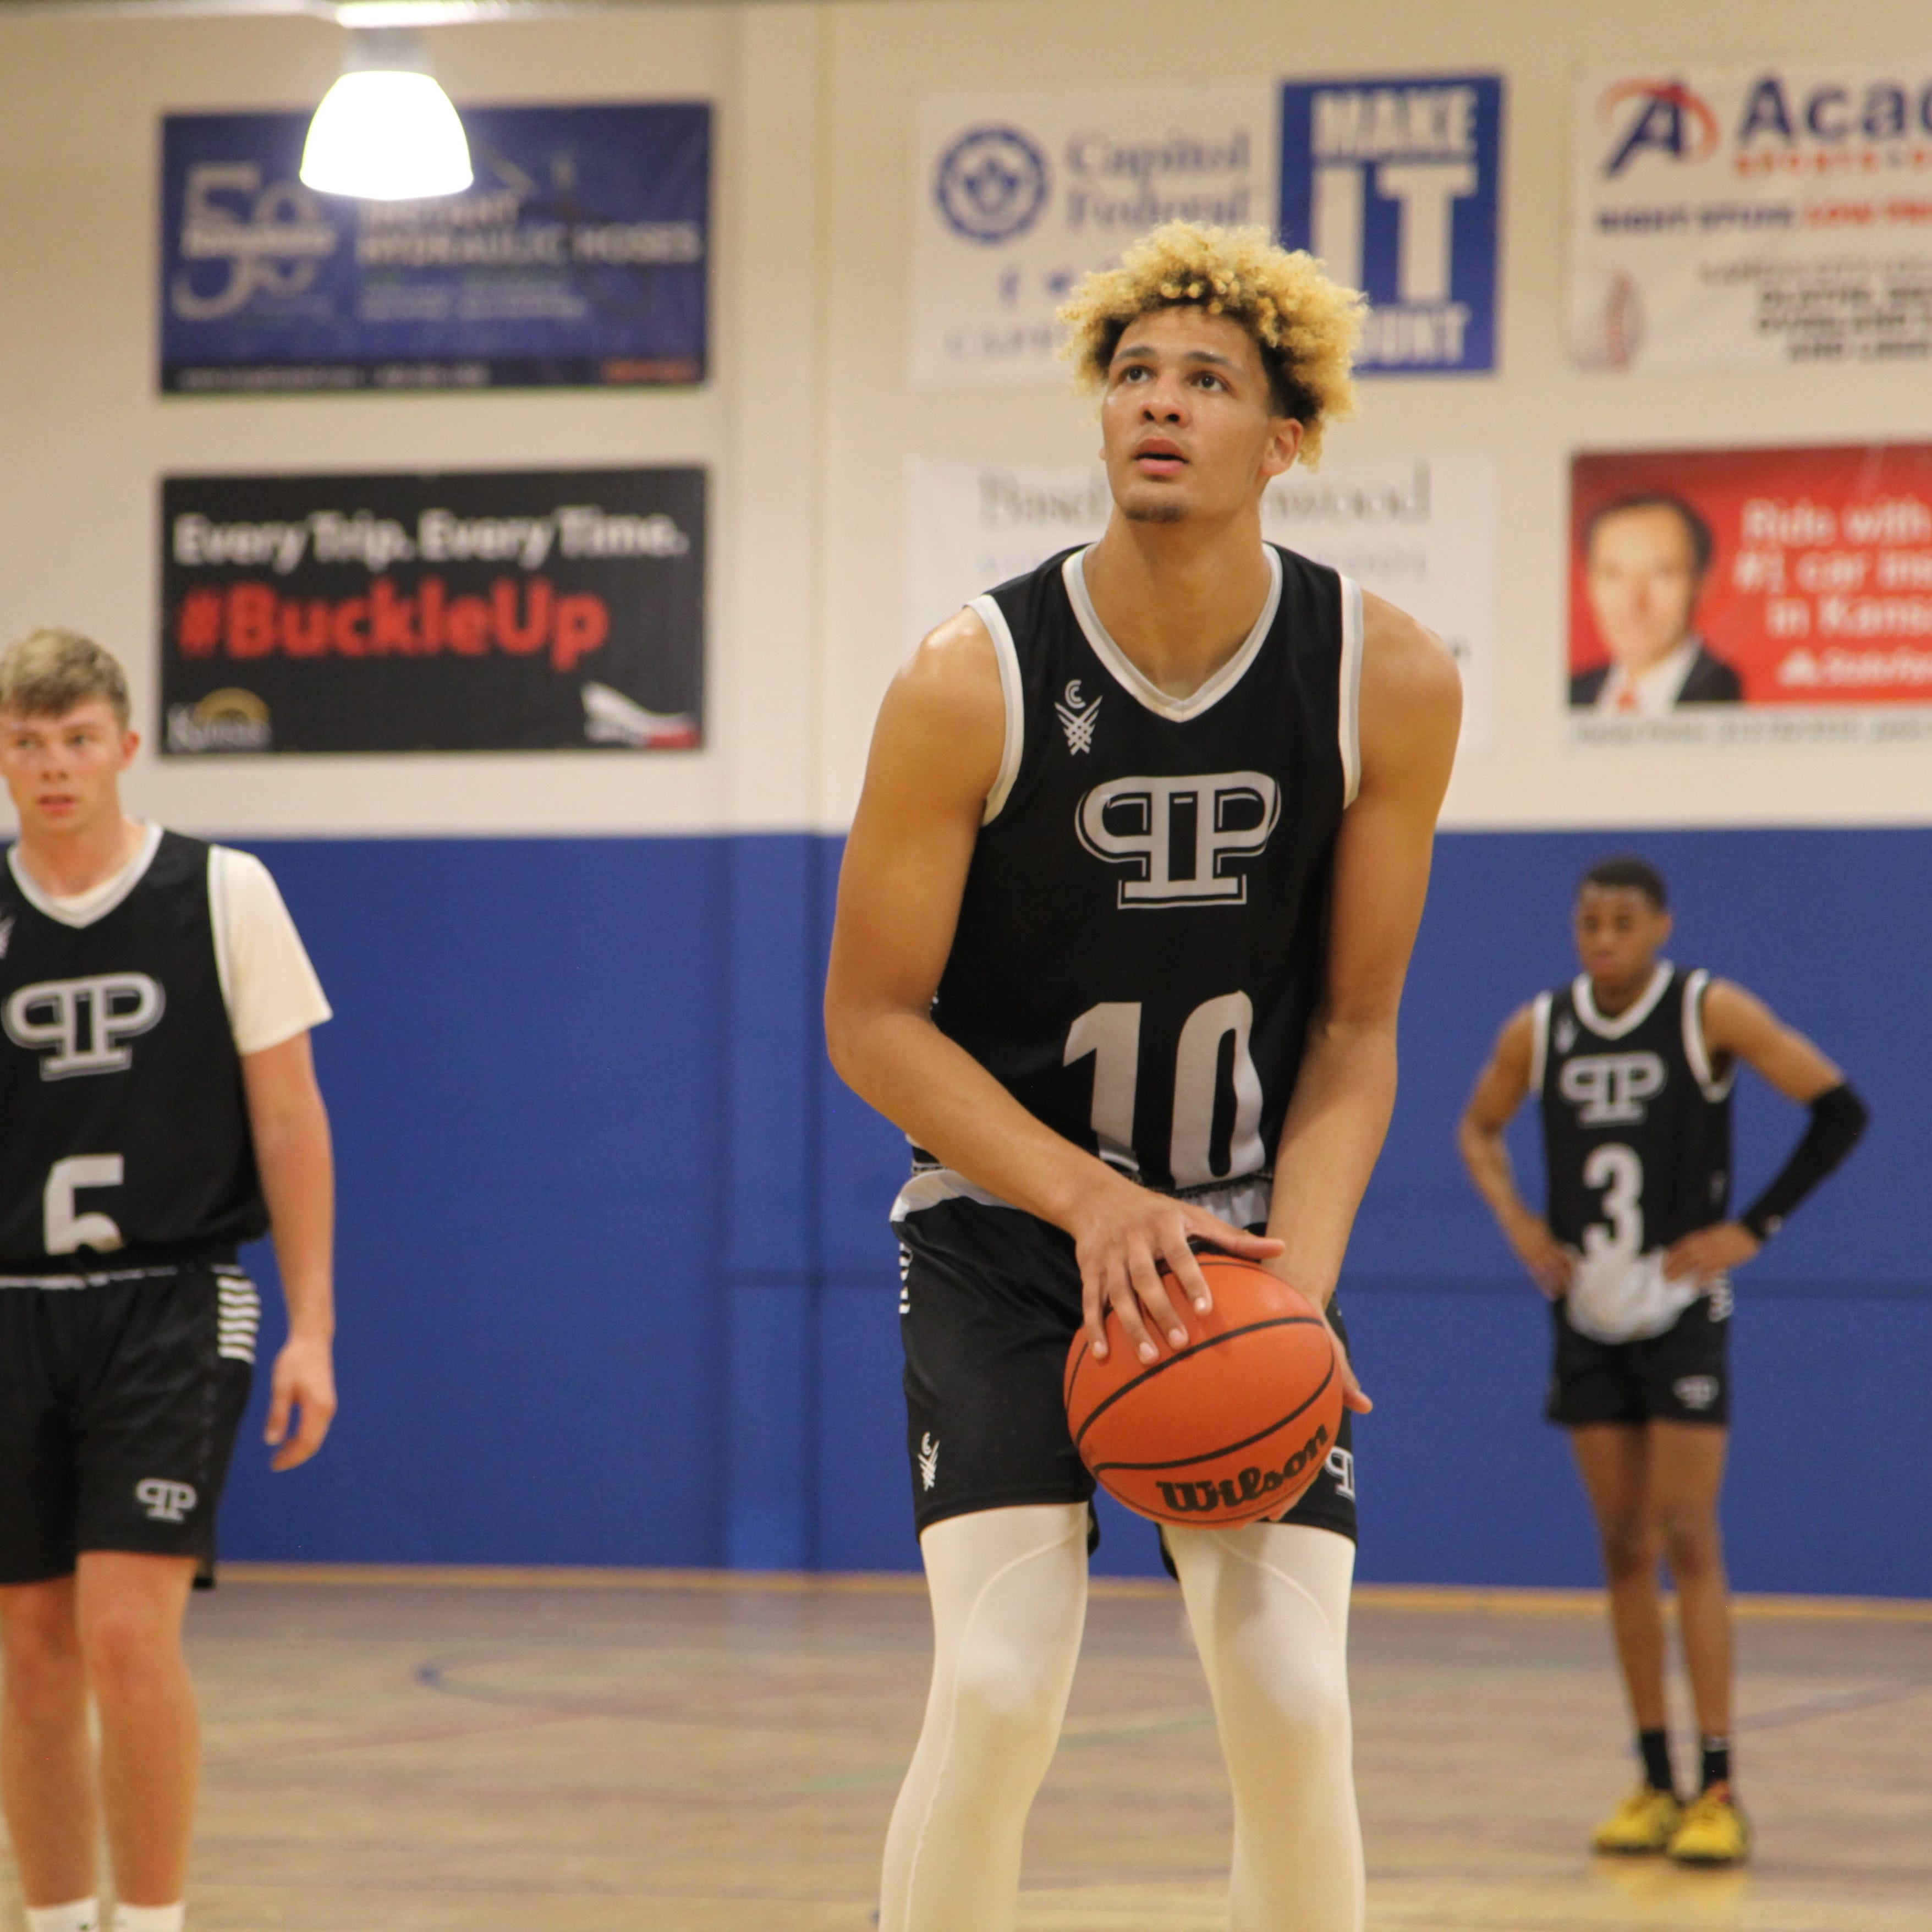 Harrison Barnes, Marcus Paige ... Xavier Foster? Is Oskaloosa's 7-footer Iowa's next blue-blood product?